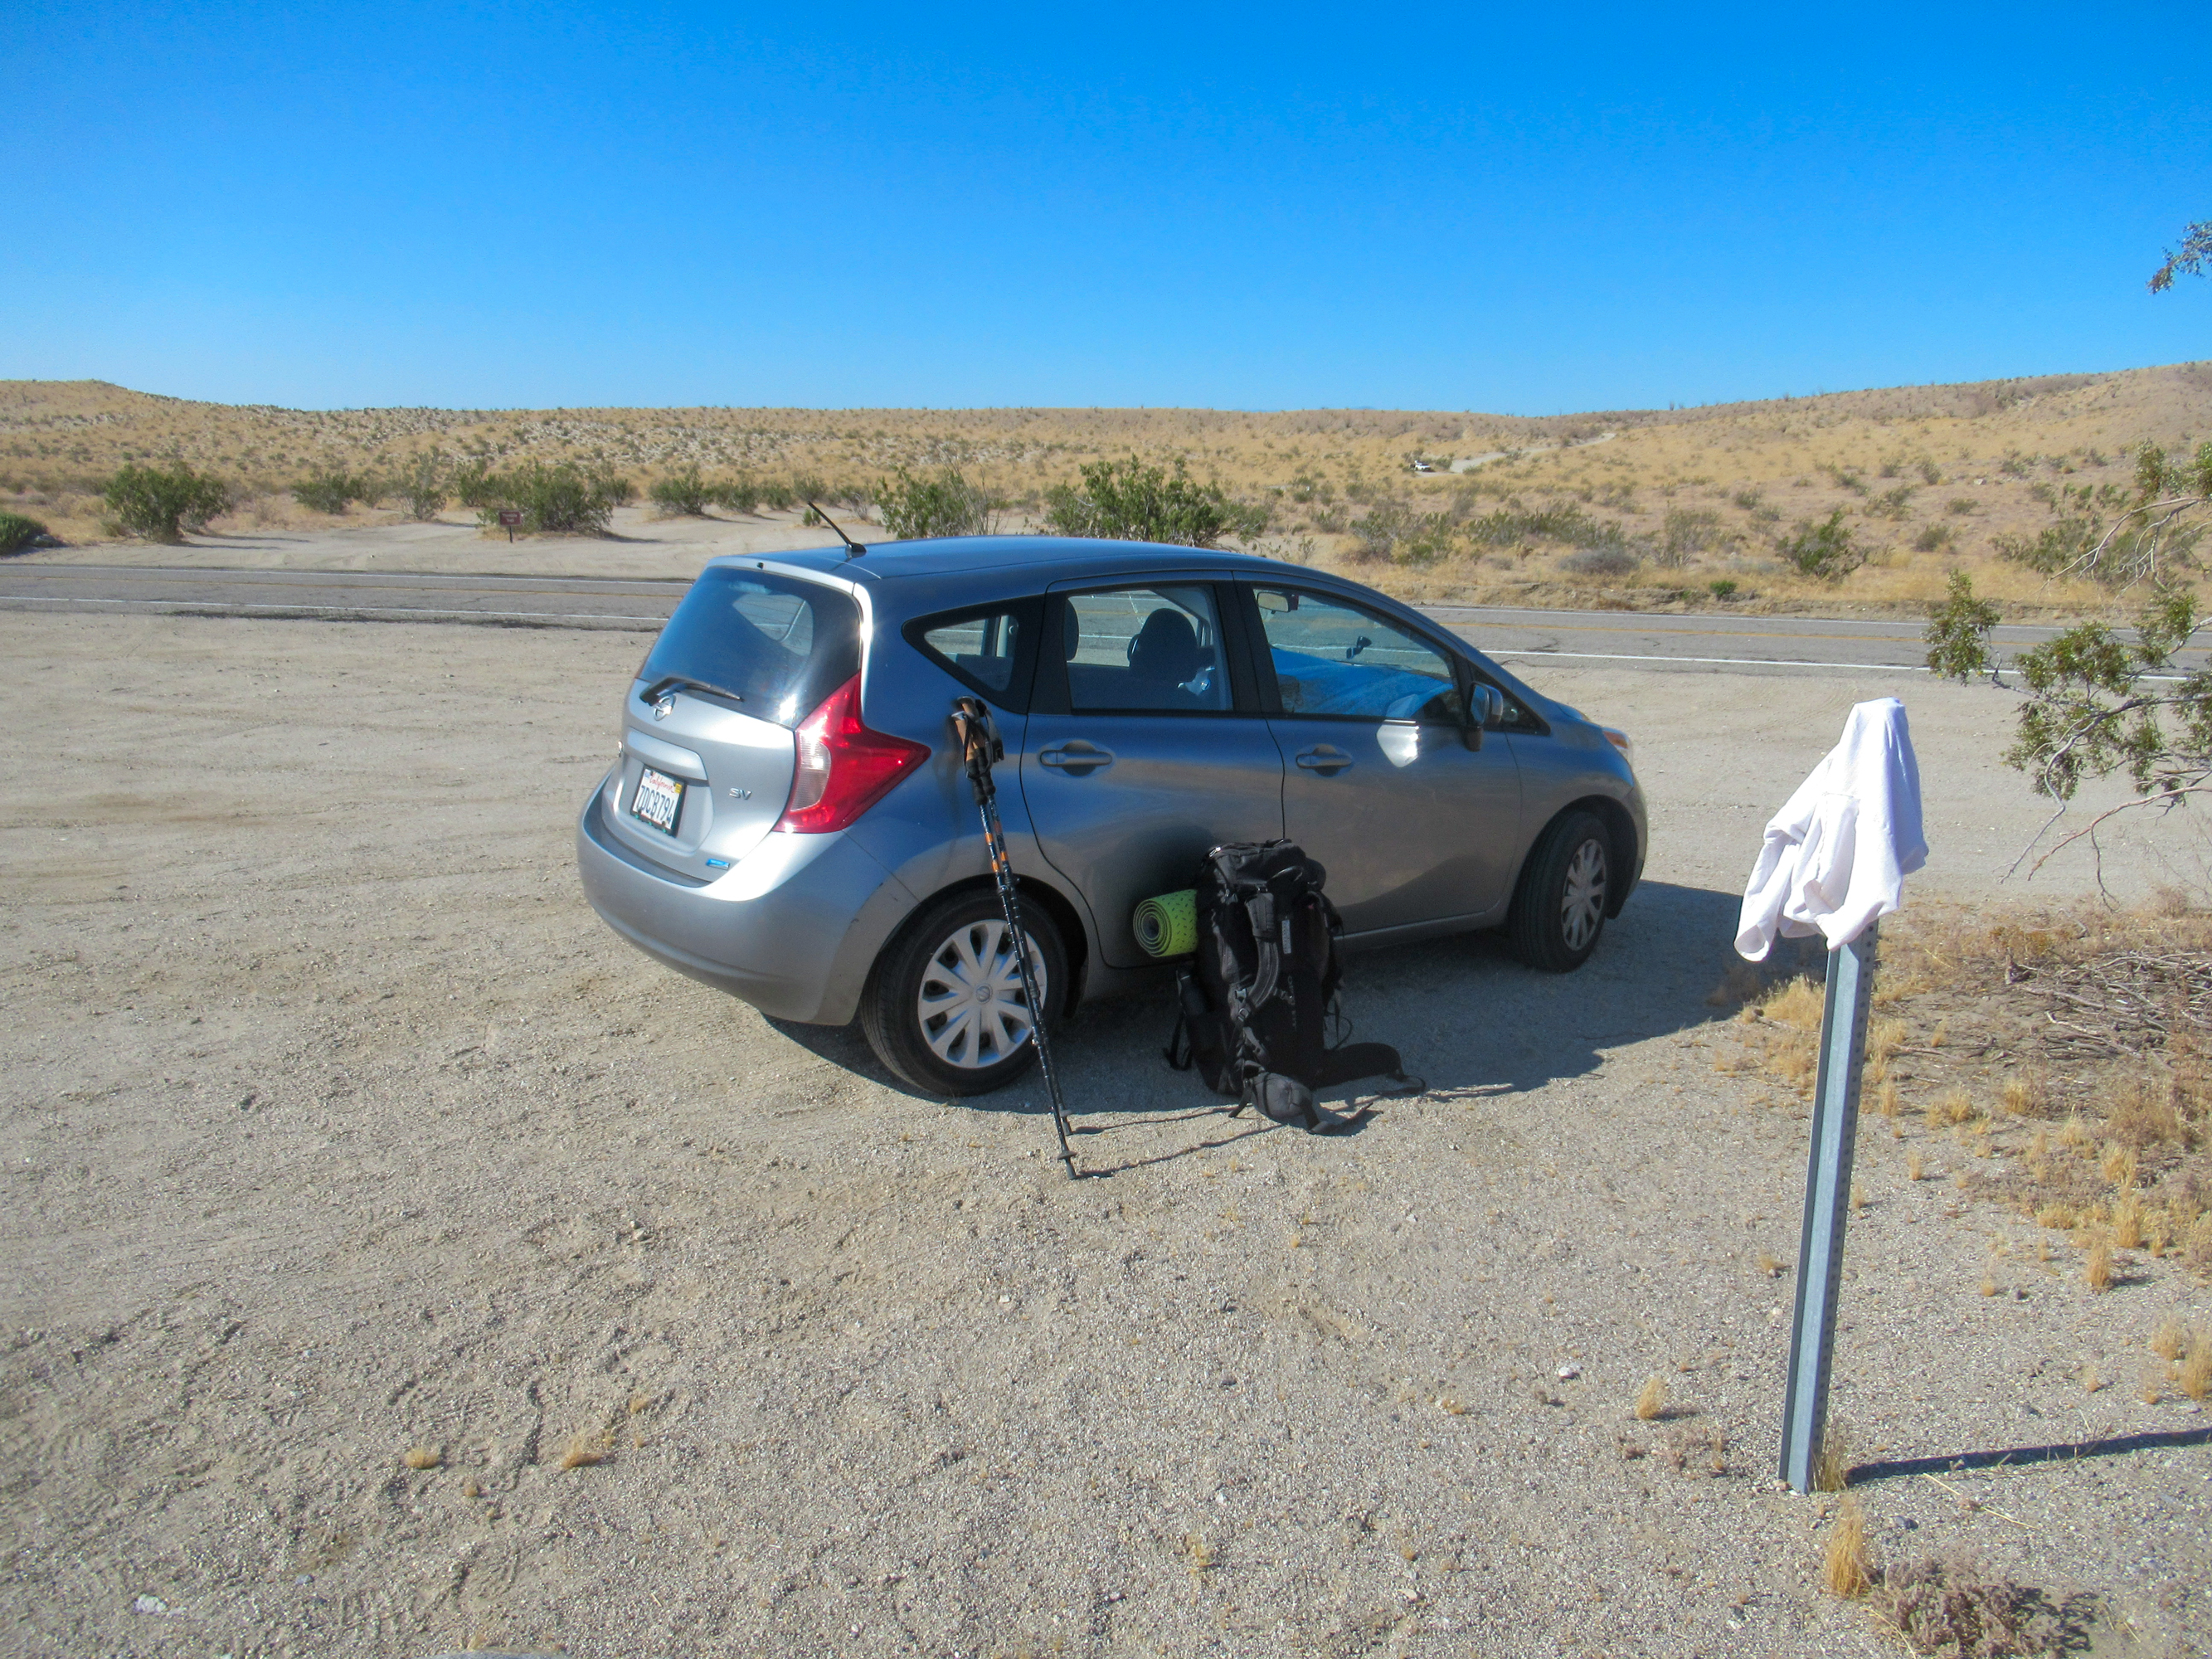 Nissan Versa parked at the Villager Peak trailhead.